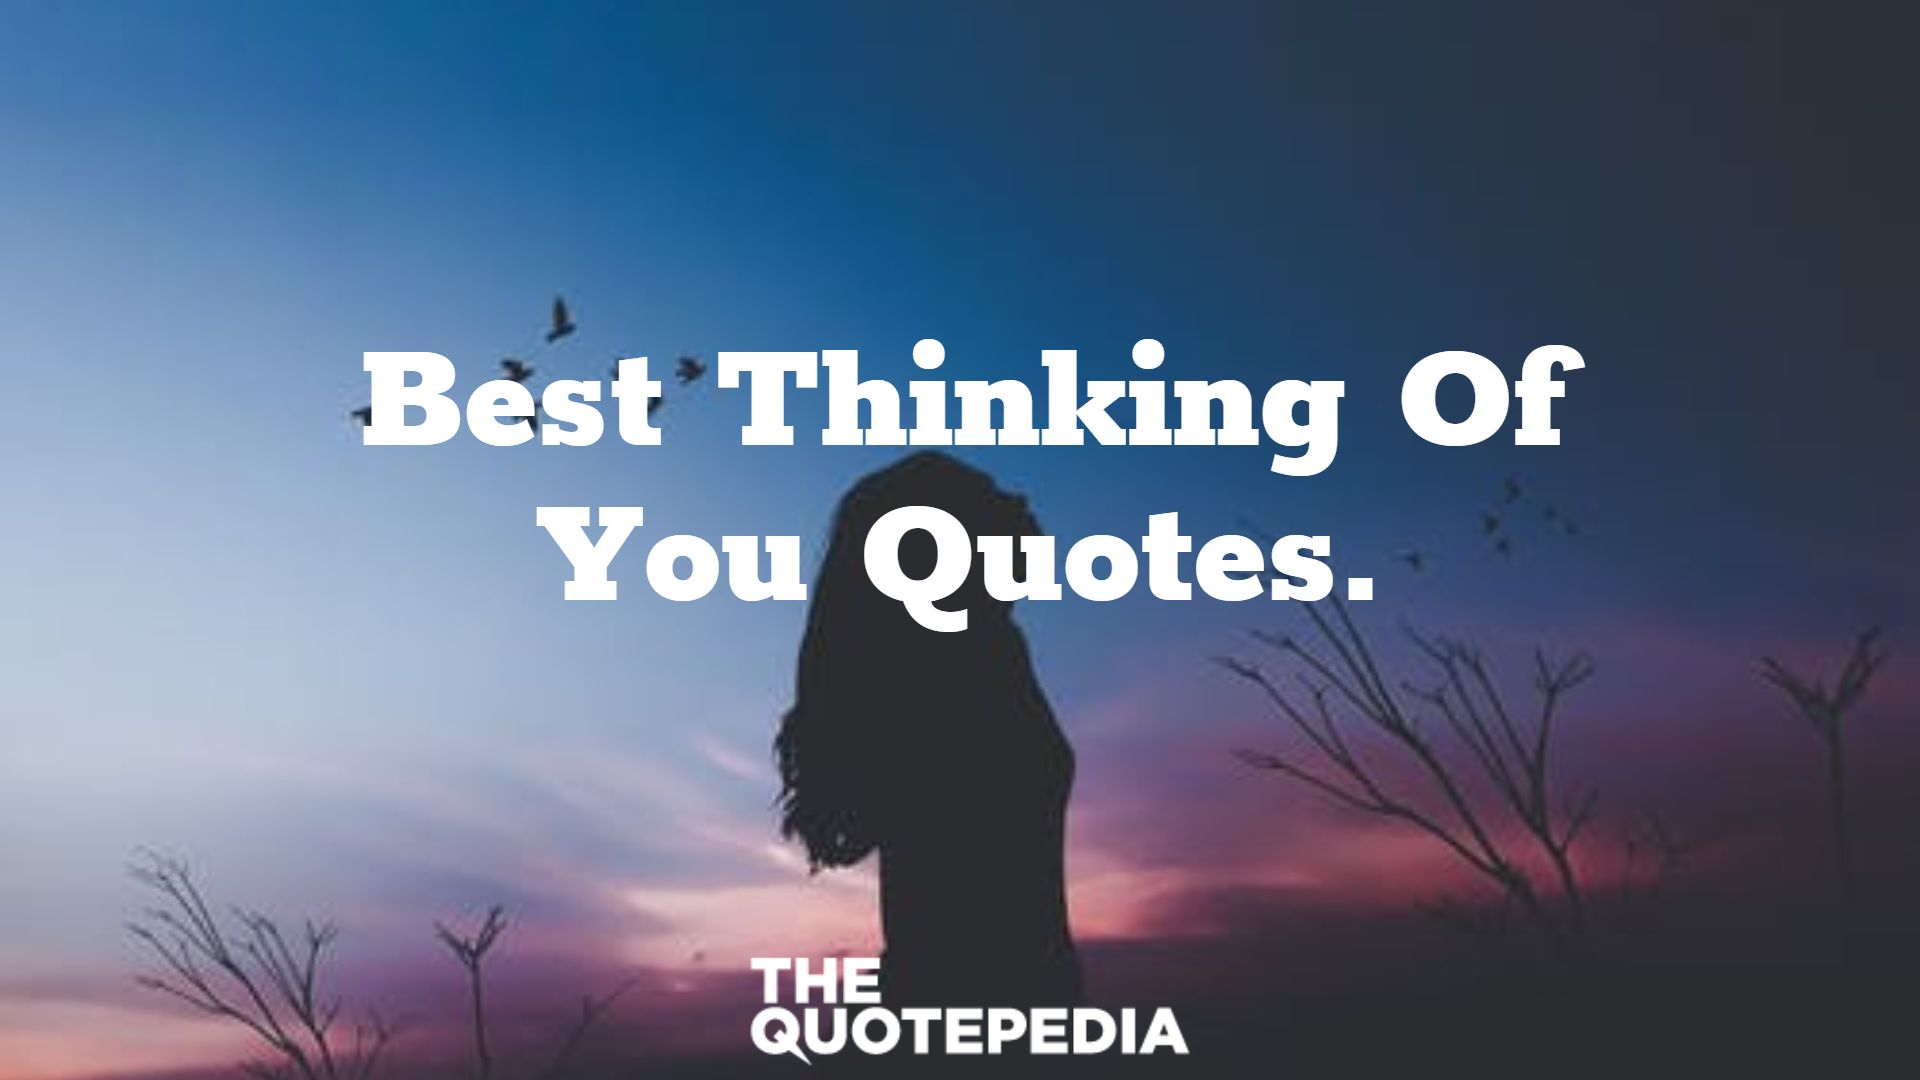 Best Thinking Of You Quotes